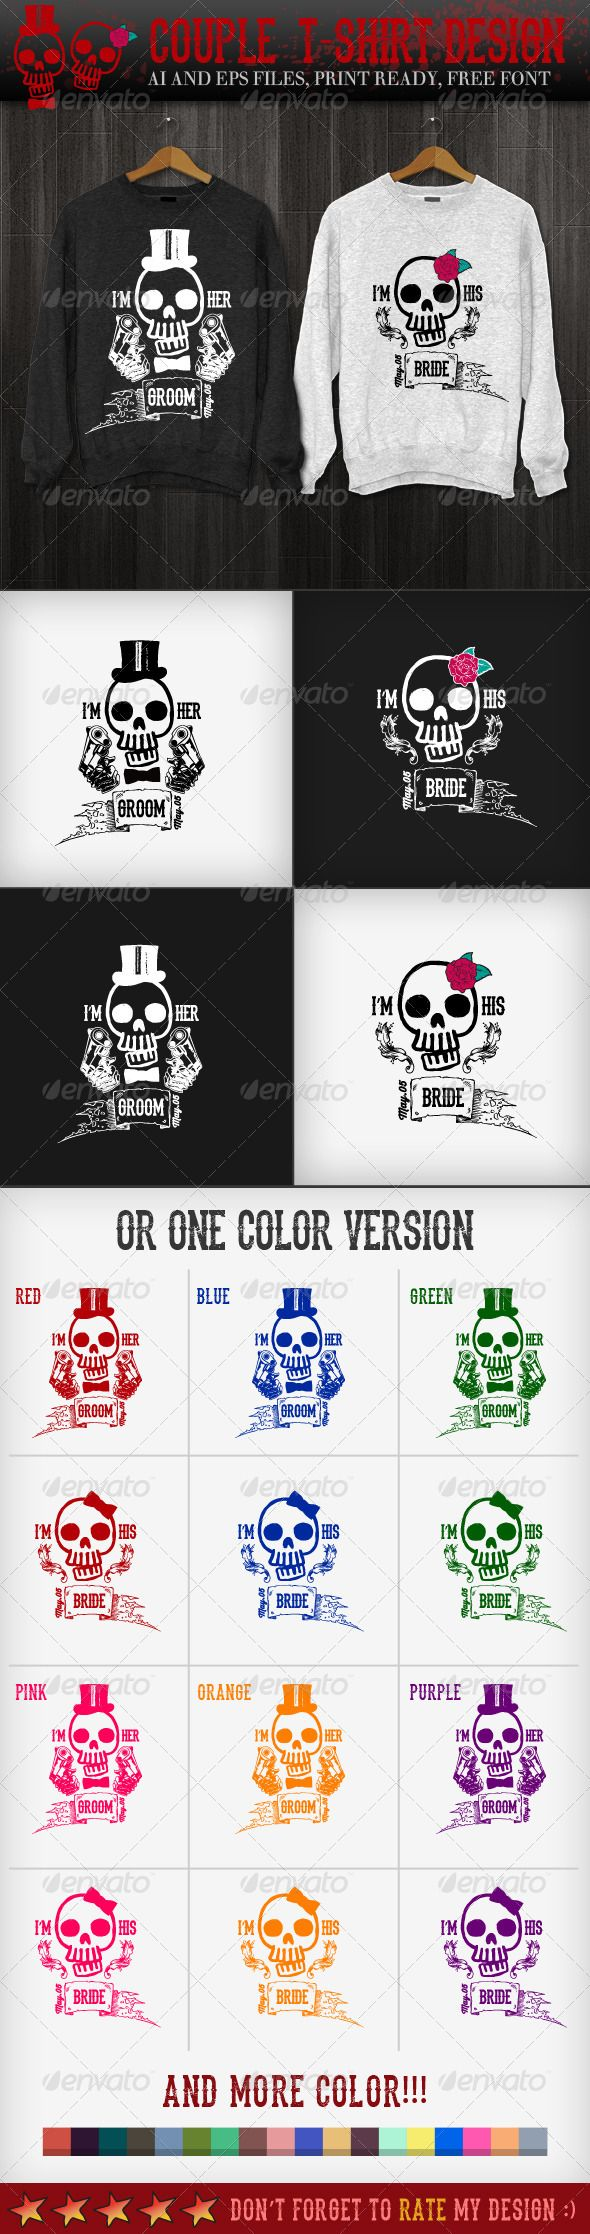 Design t shirt maker free - Design T Shirt Software Free Download Software Couple T Shirt Collection Funny Designs Download Here